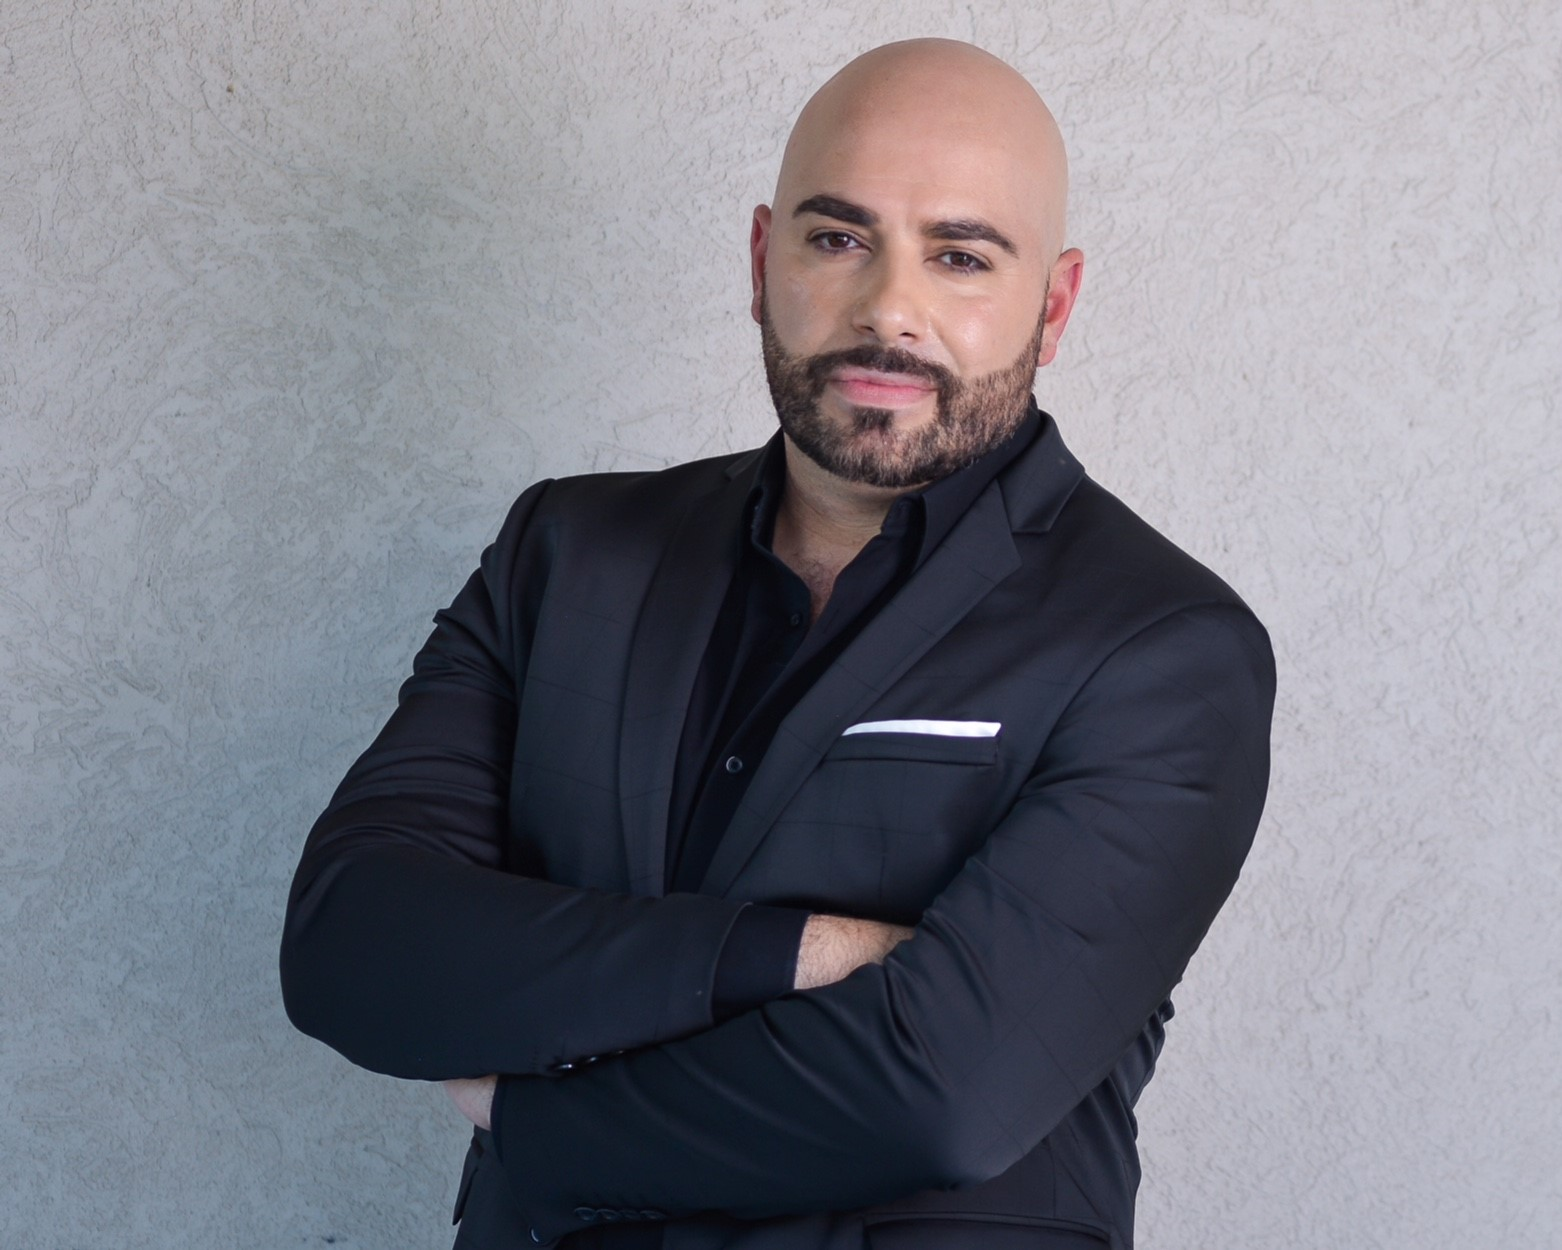 Gino Trunzo, formerly assistant vice president of essie, has been named new assistant vice president of business development for Redken and Pureology.